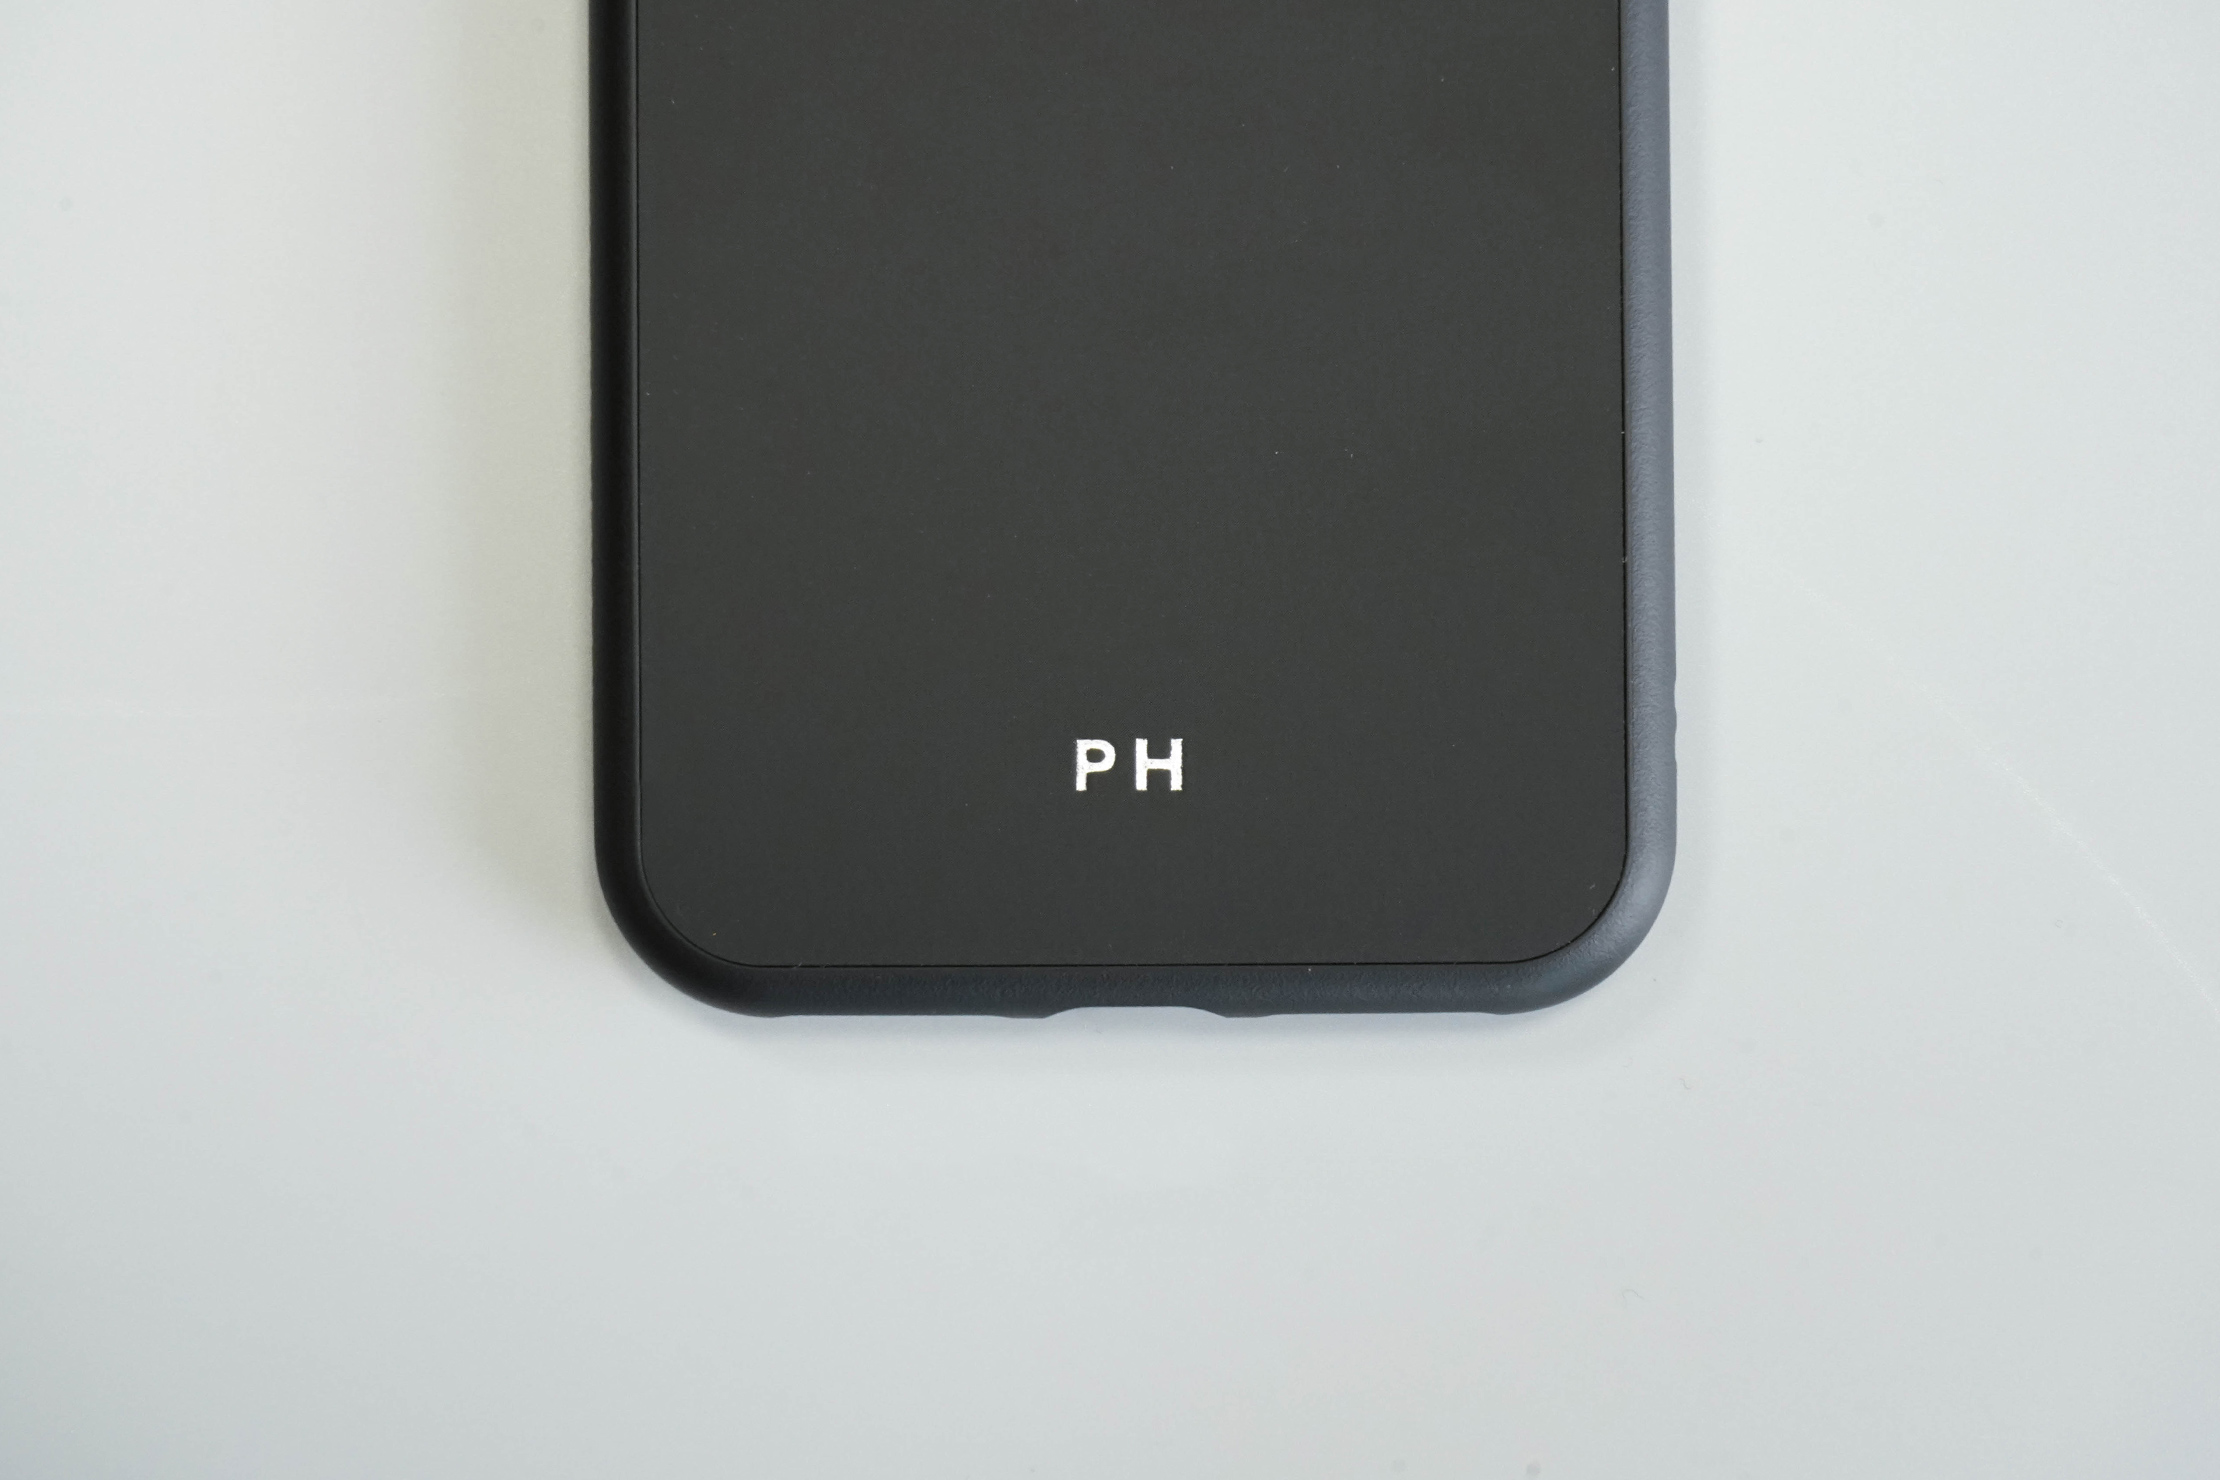 RhinoShield SolidSuit Case PH